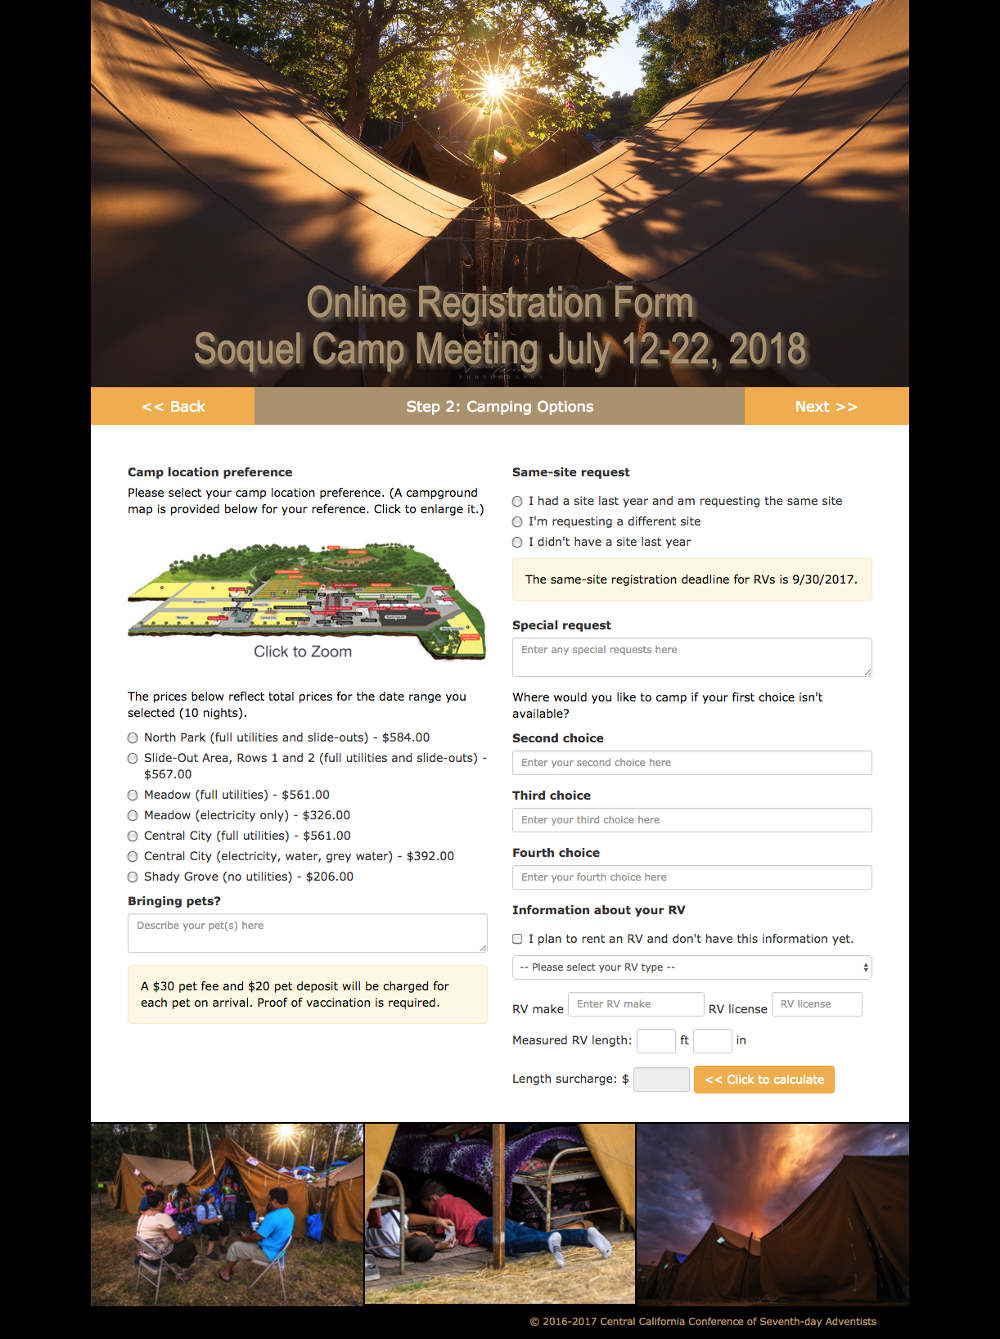 Soquel Camp Meeting online registration form page 2